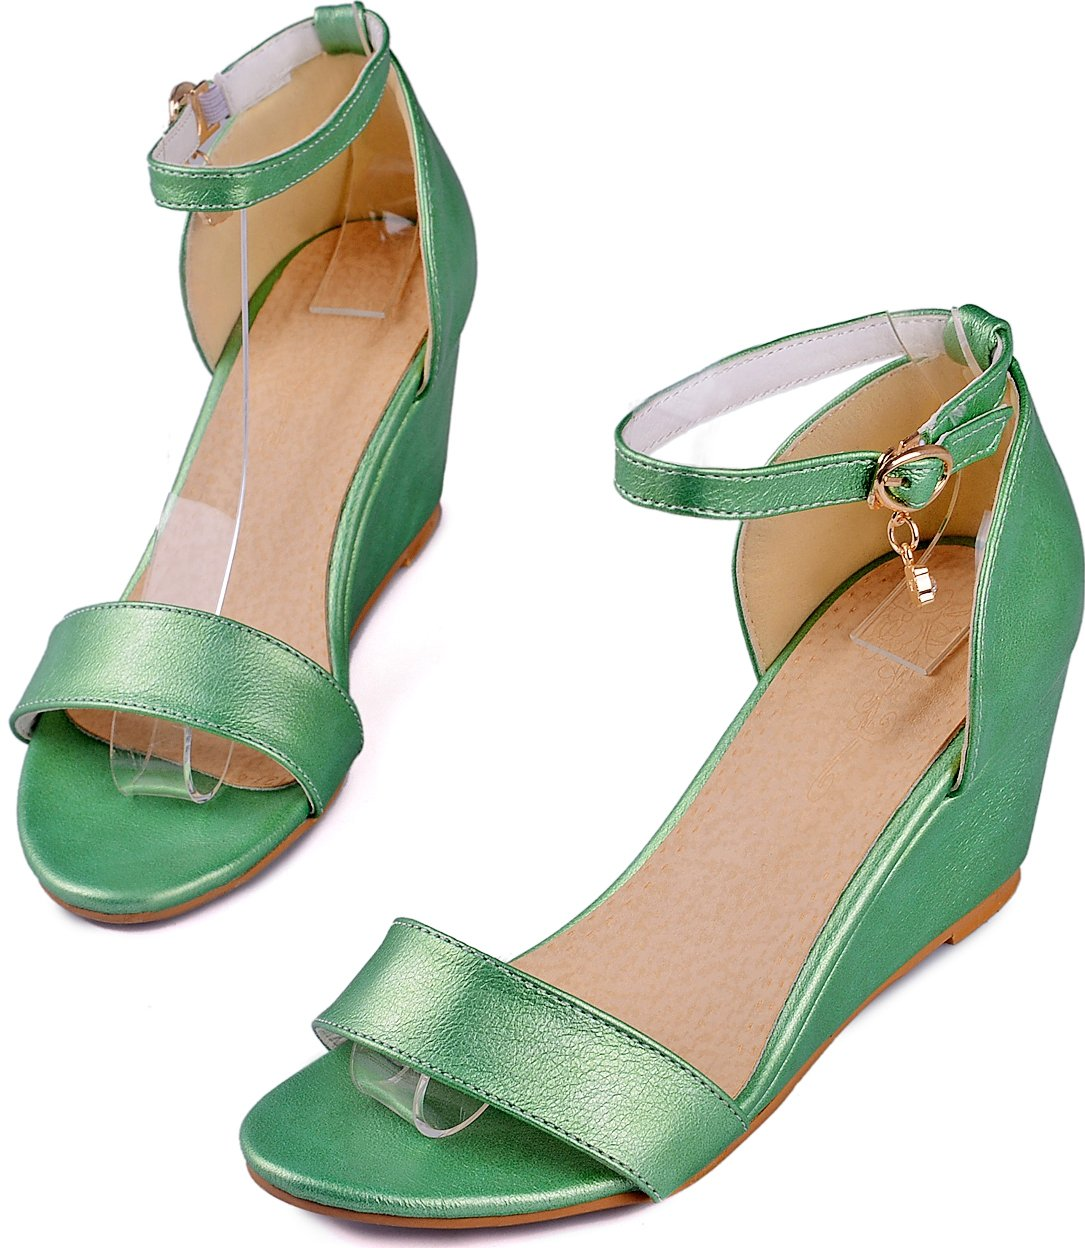 KingRover Women's Pendant Open Toe Single Band Ankle Strap Comfy Shoes Mid Heels Wedge Sandals B07C9SH1V2 5 B(M) US|Green